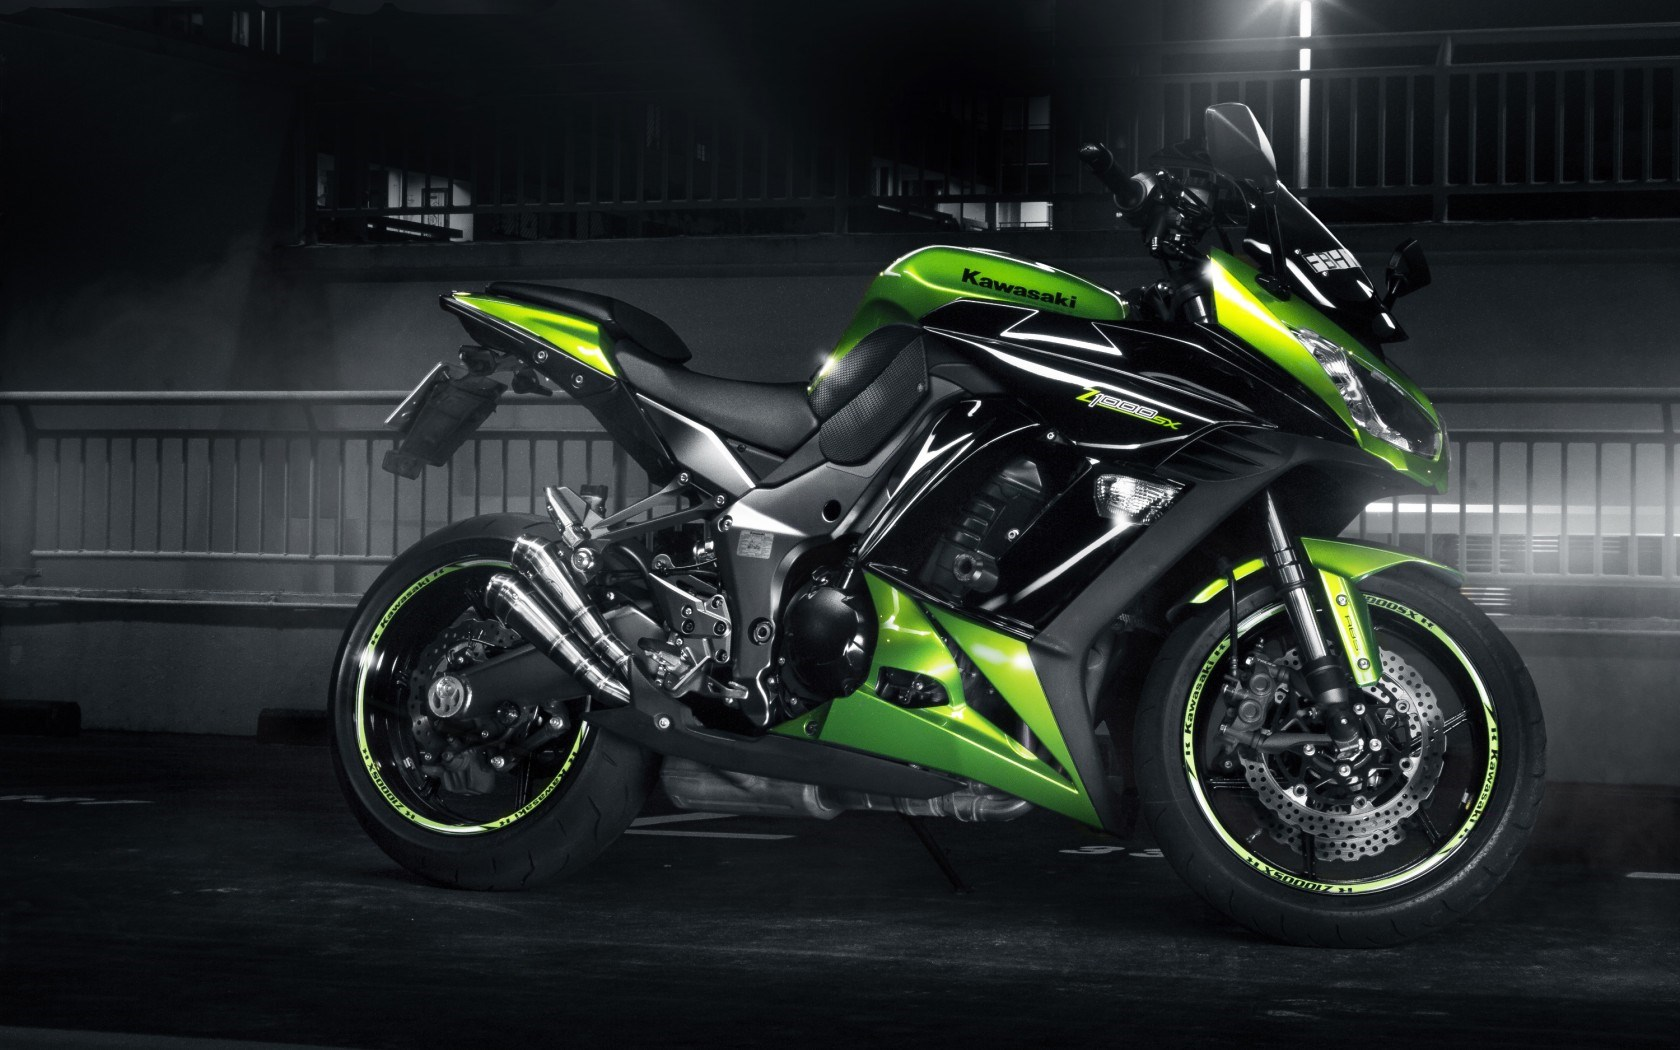 46 Kawasaki Wallpaper Desktop On Wallpapersafari